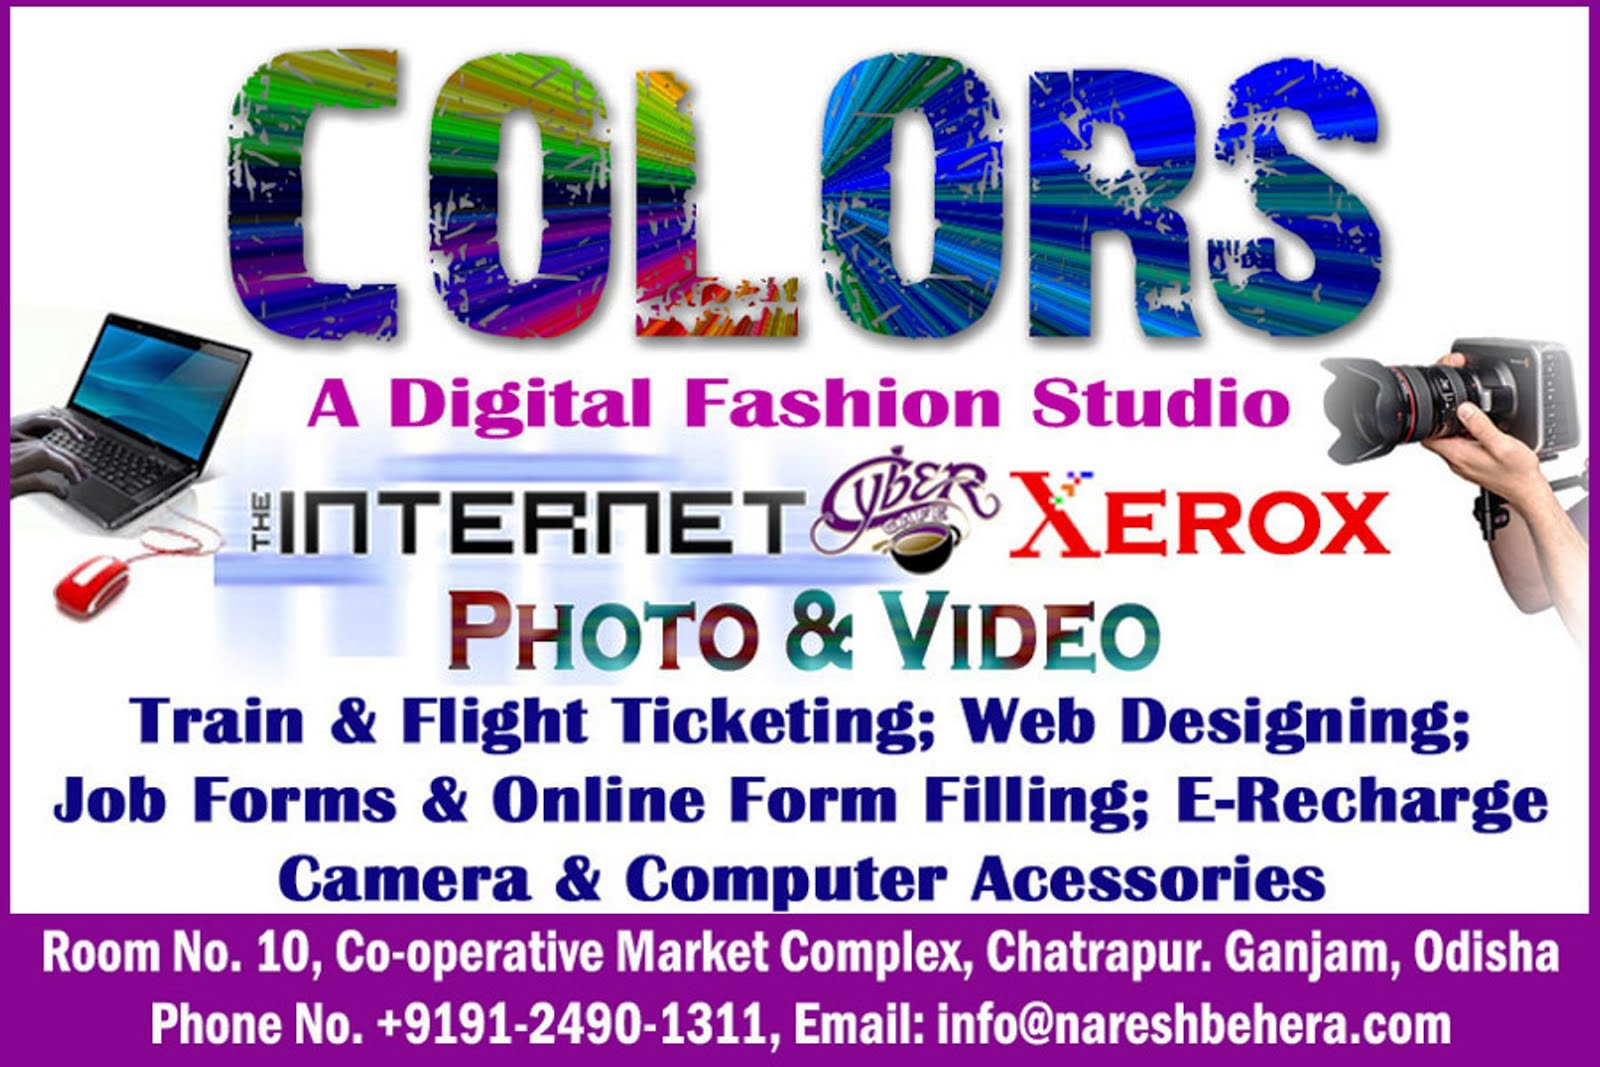 COLORS - A Digital Fashion Studio